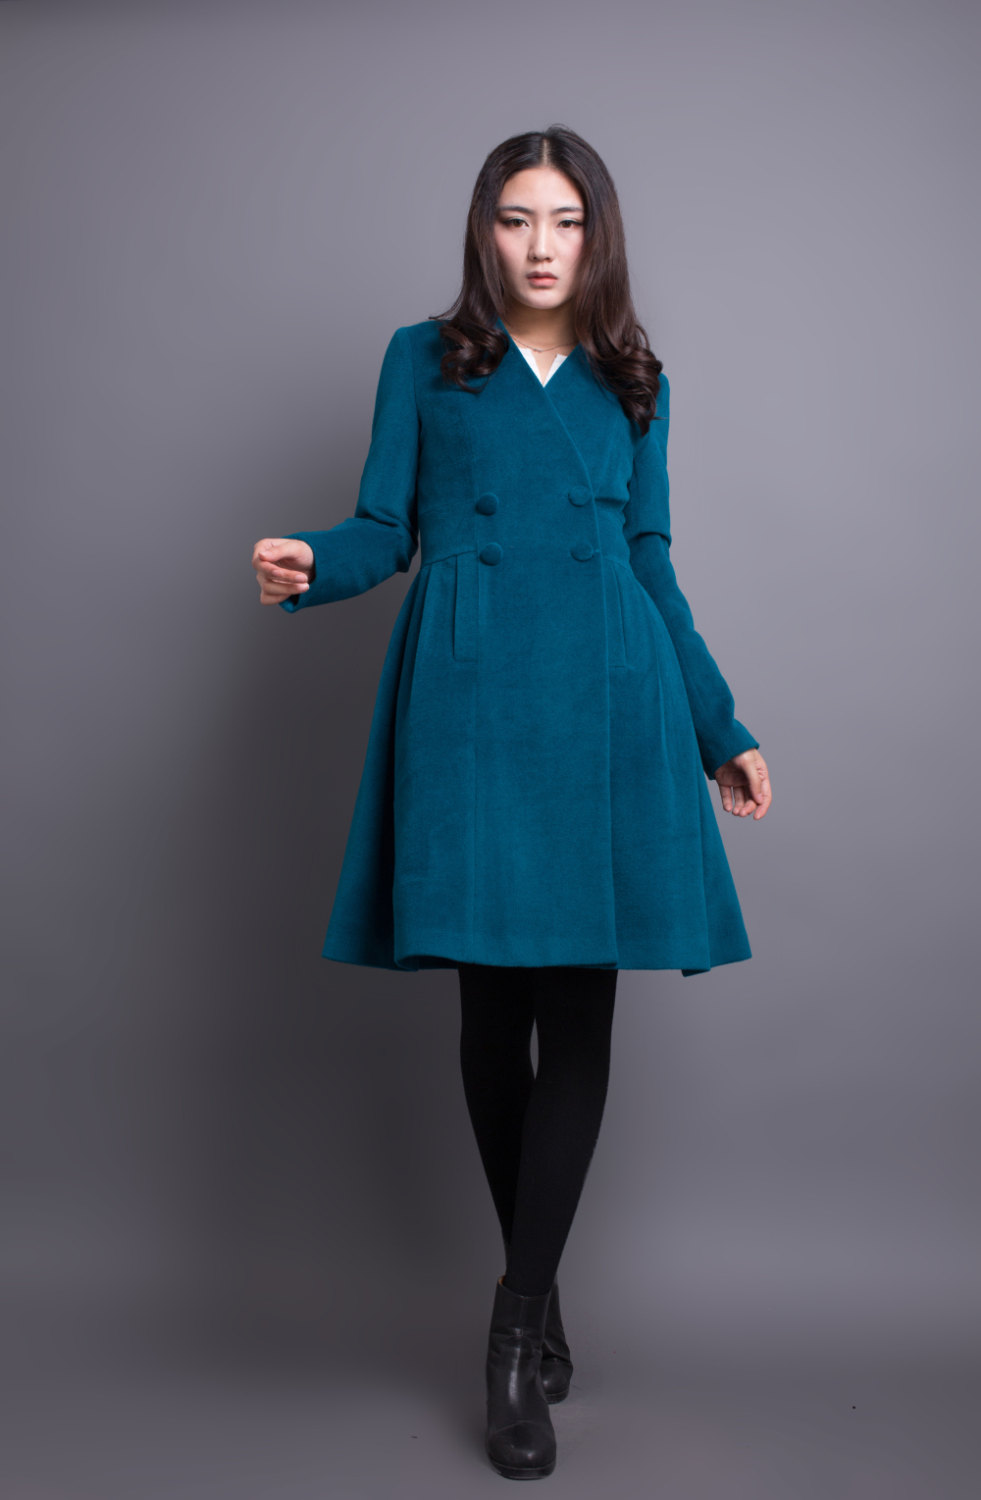 08417bfa4370a Peacock Blue Coat Pleated Wool Winter Coat Women Long Jacket on Luulla